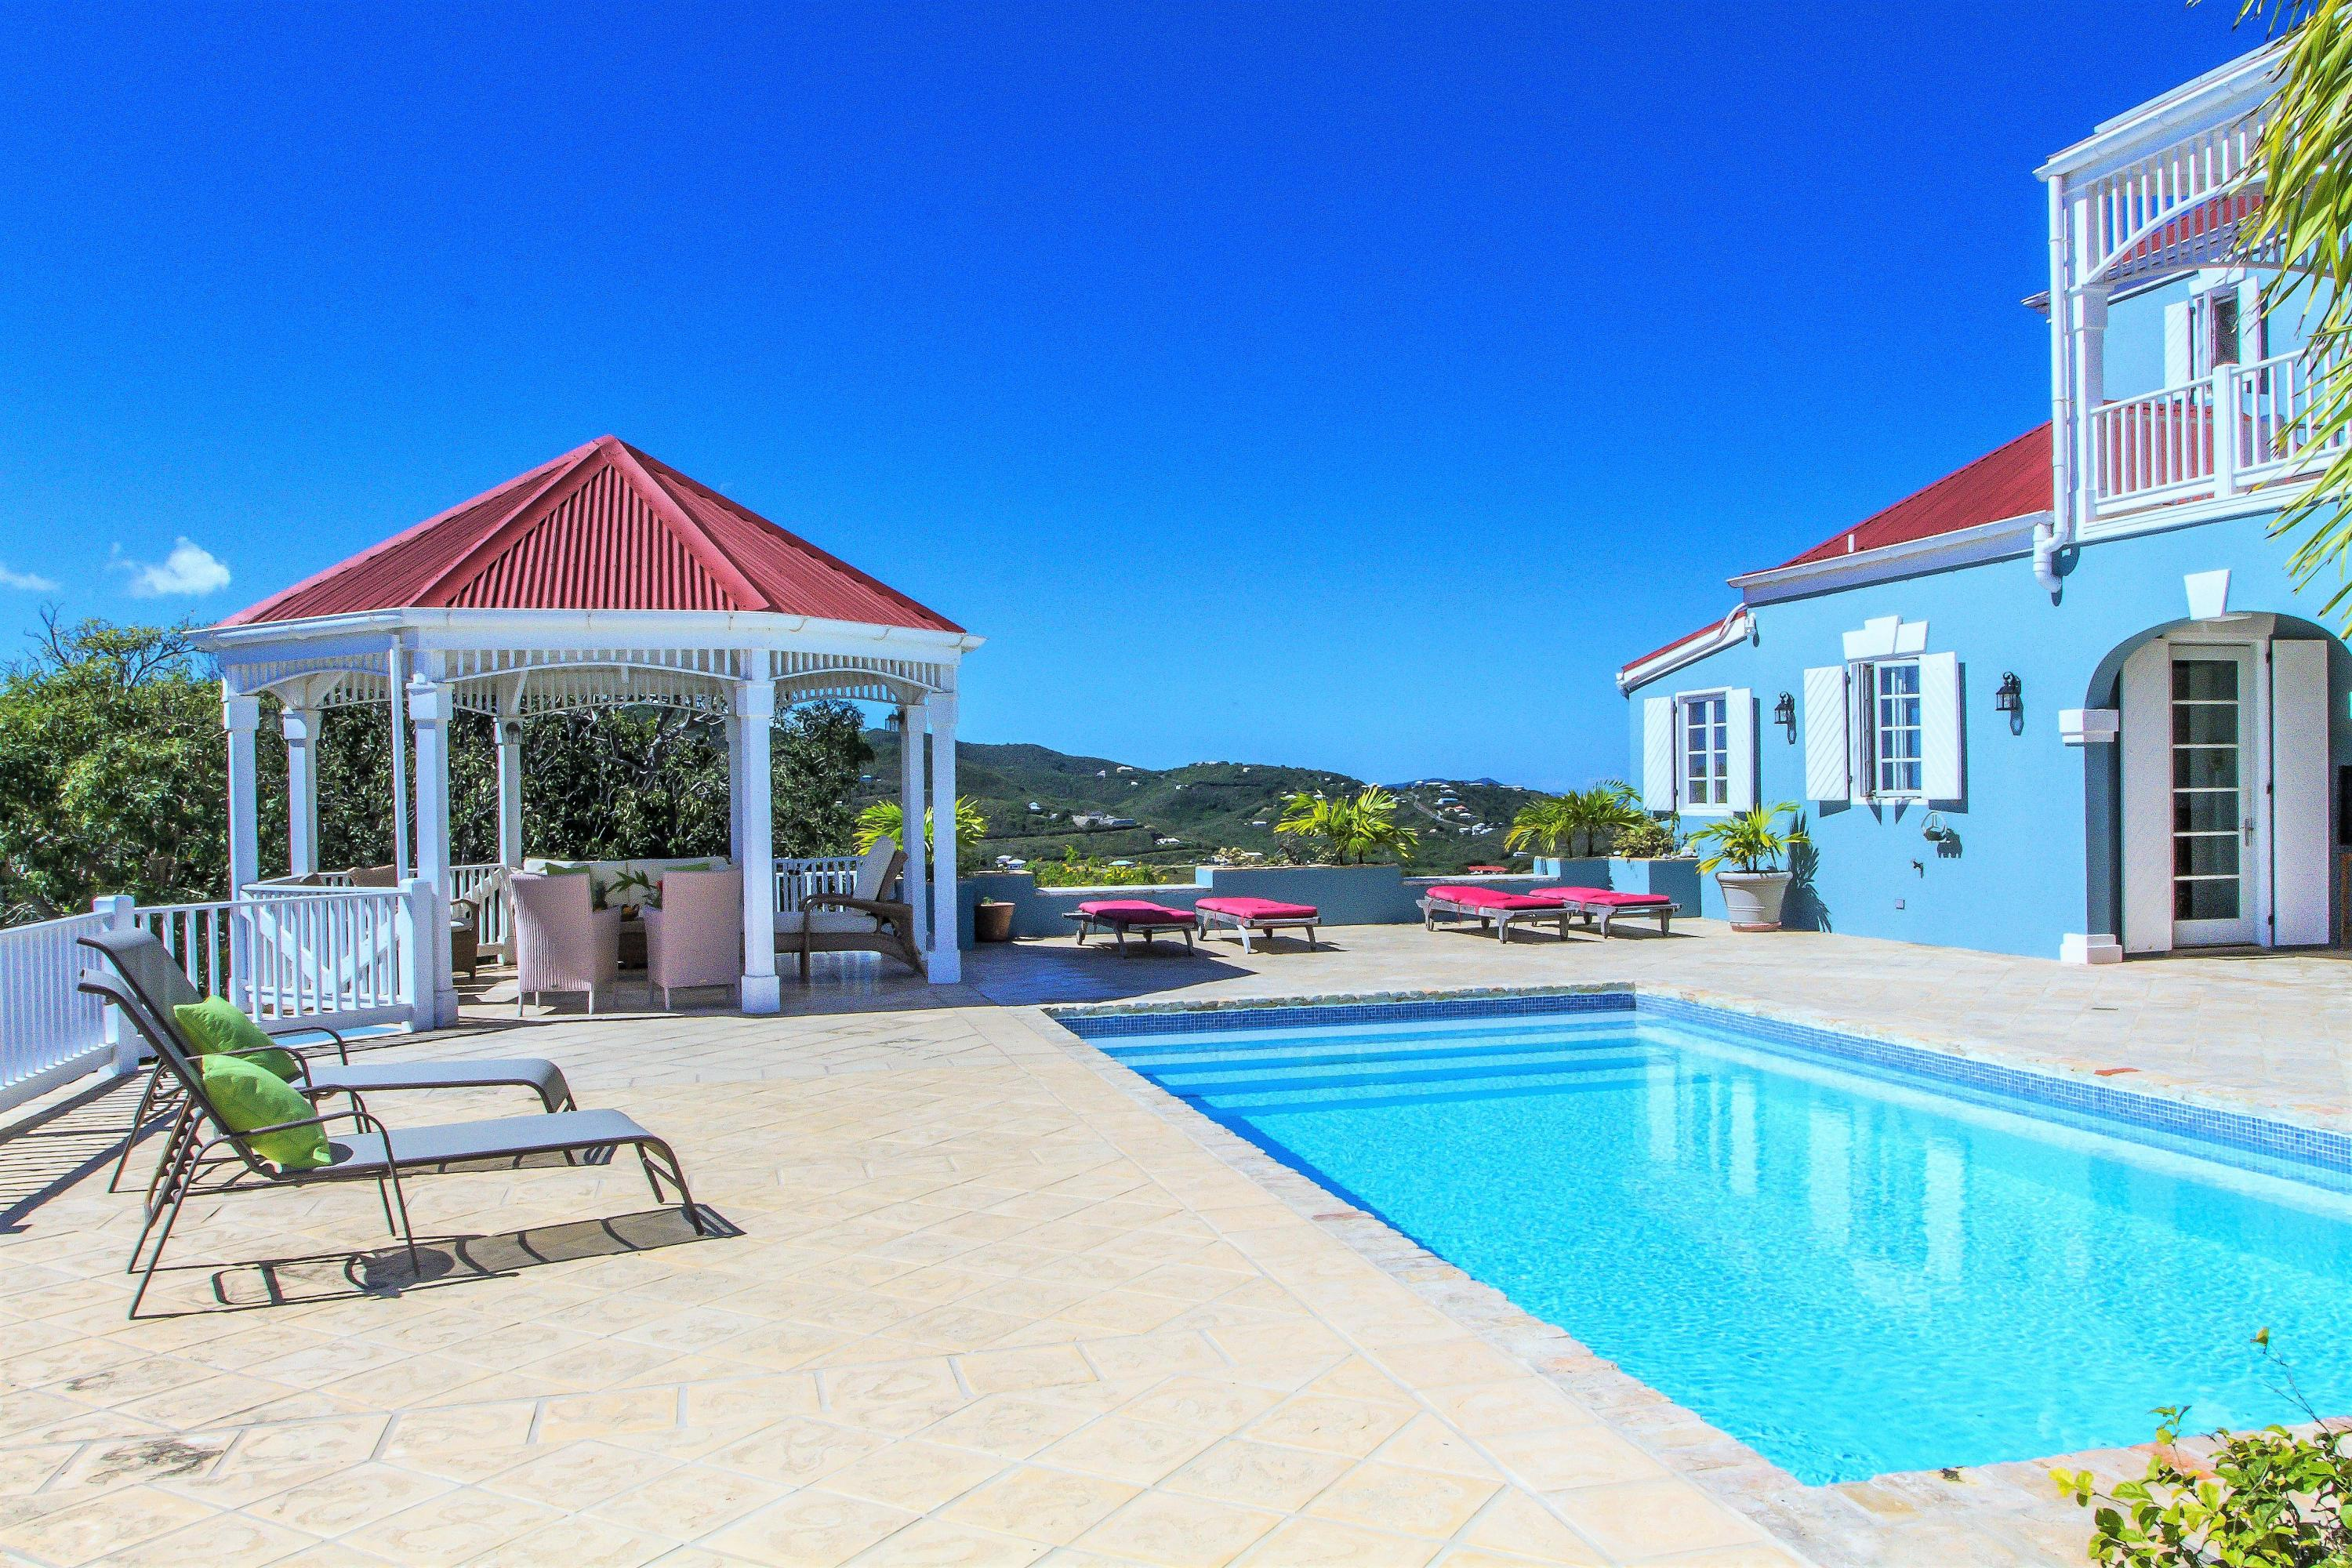 Inviting pooldeck, gazebo and gallery